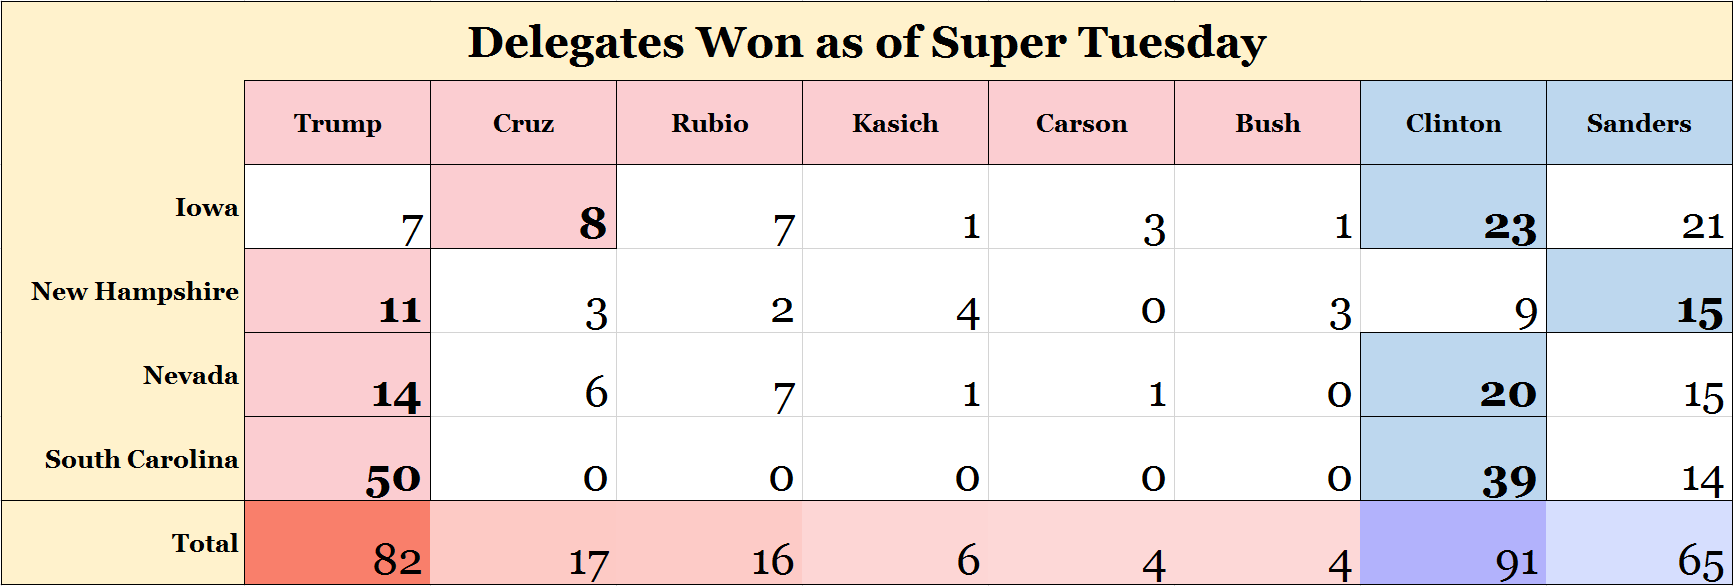 delegates won as of super tuesday